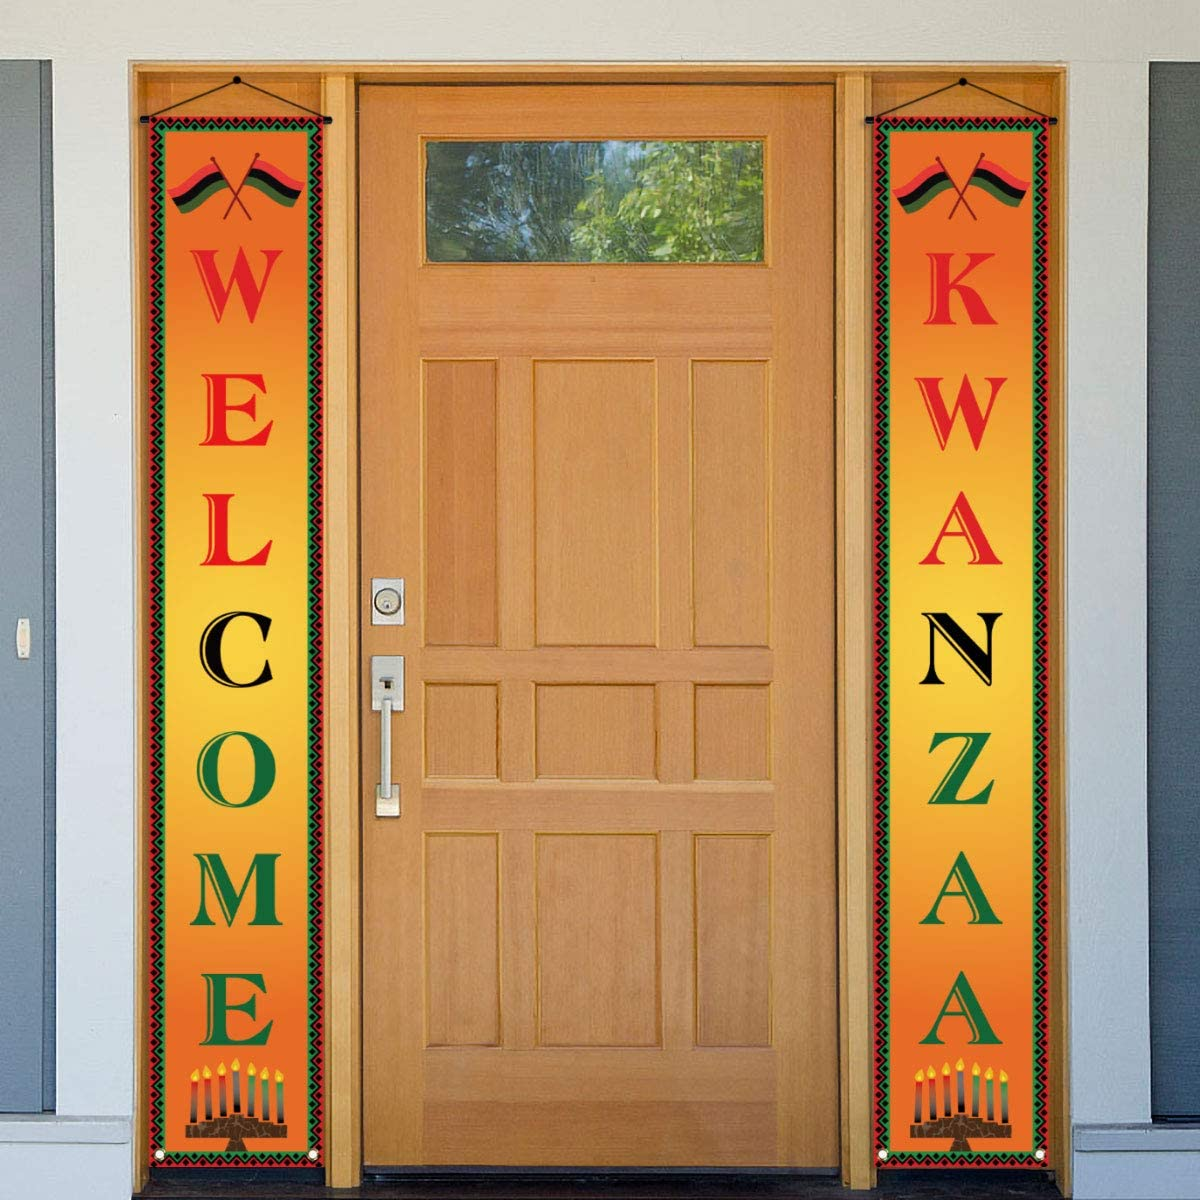 Kwanzaa Decoration,Happy Kwanzaa Banner,Kwanzaa Welcome Porch Sign,African Heritage Holiday Party Celebration Decor Bunting for Home Office